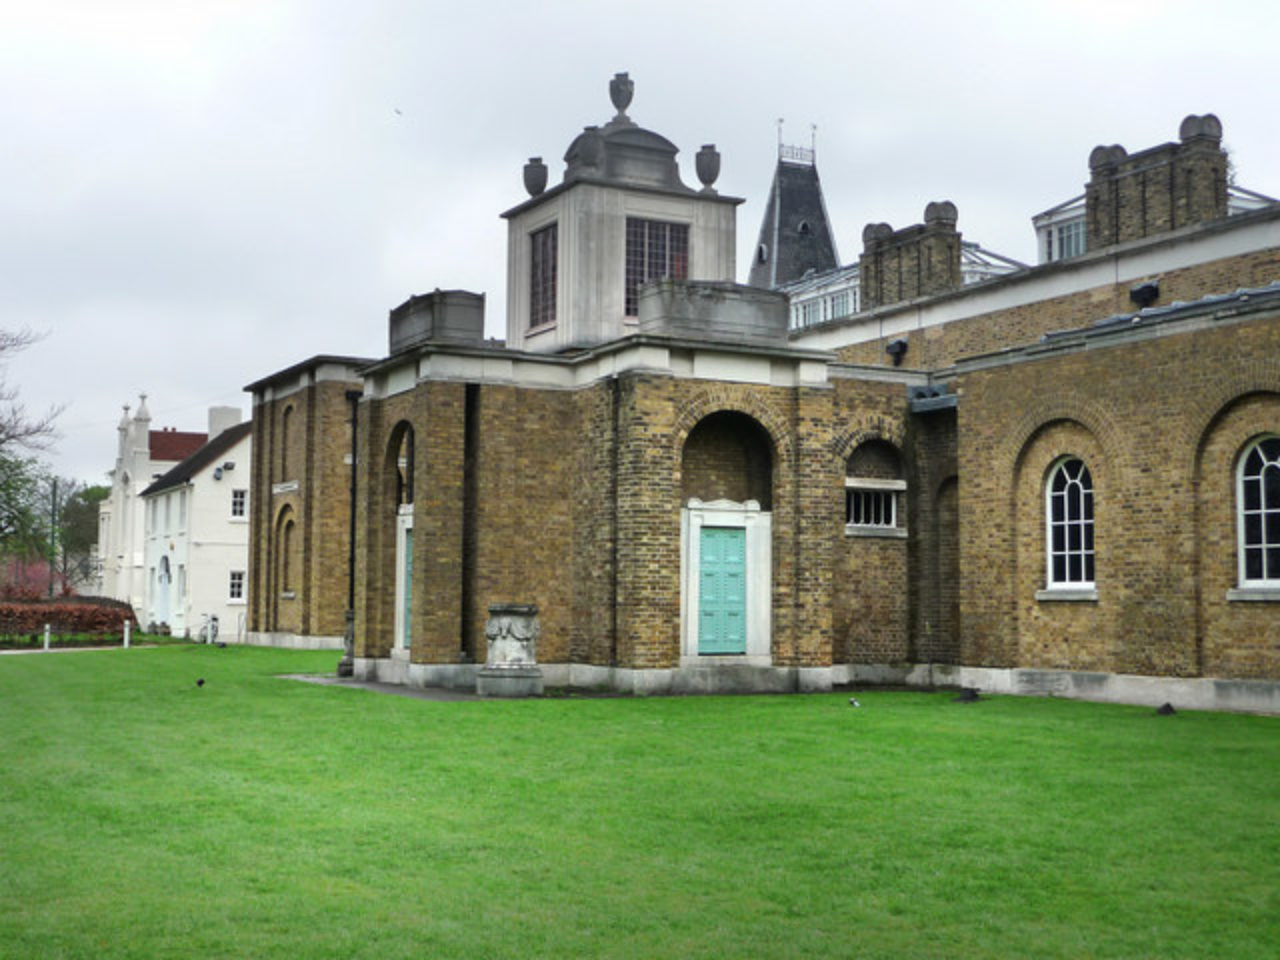 Dulwich Picture Gallery, Mausoleum Exterior (Image: Wikimedia)